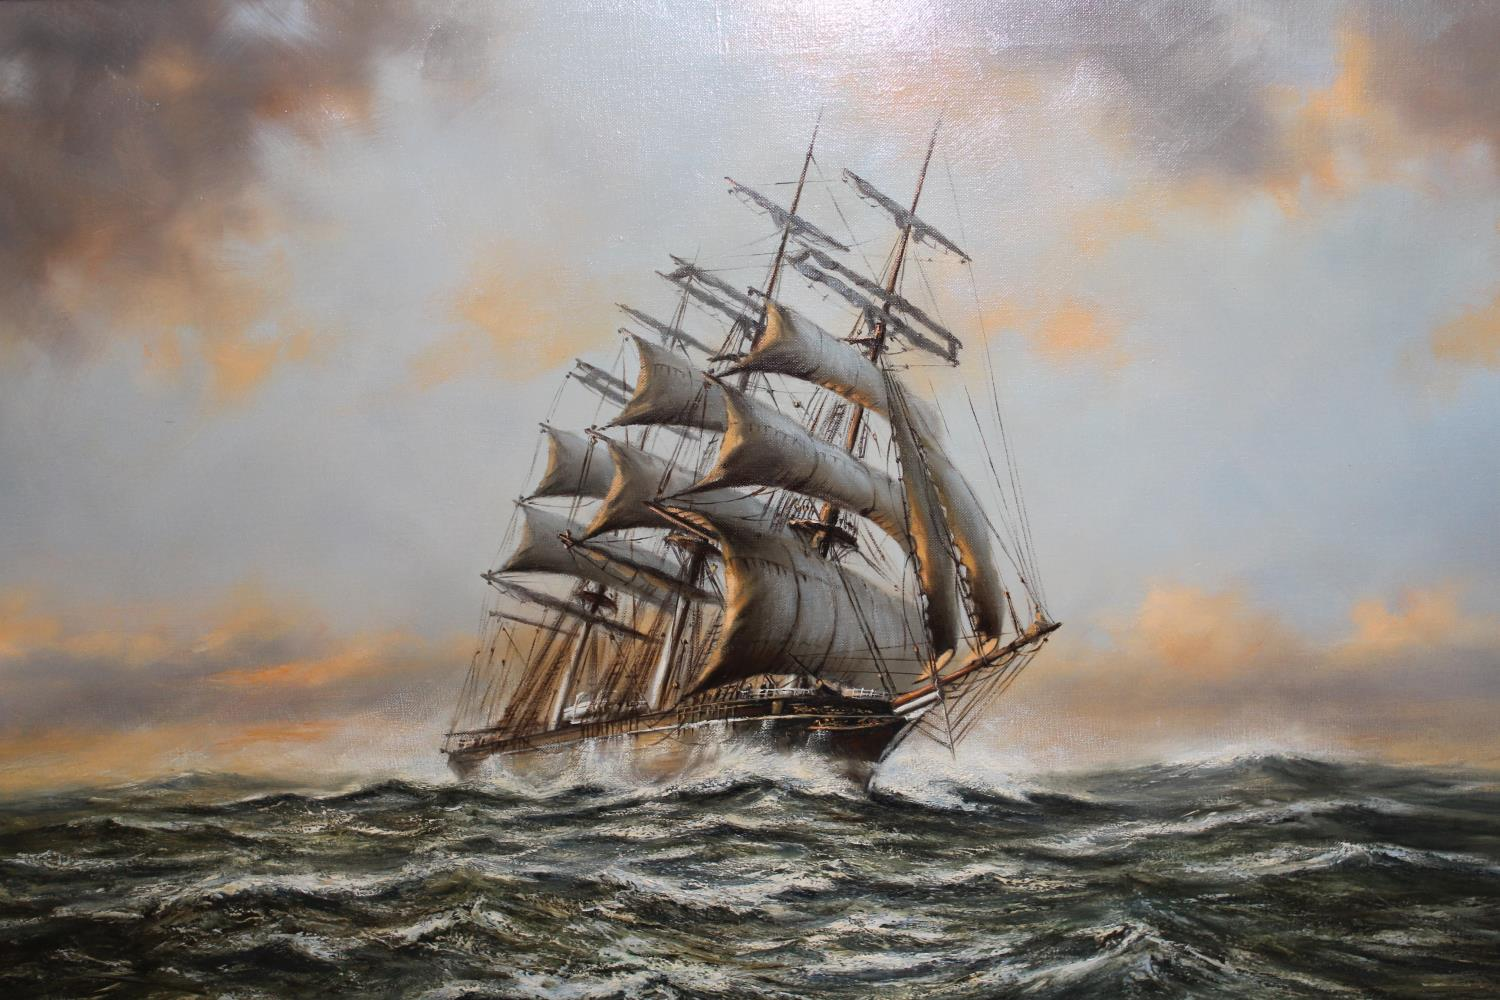 Anthony Hedges, oil on canvas, three masted clipper at sea, signed, 24ins x 36ins, gilt framed - Image 2 of 2